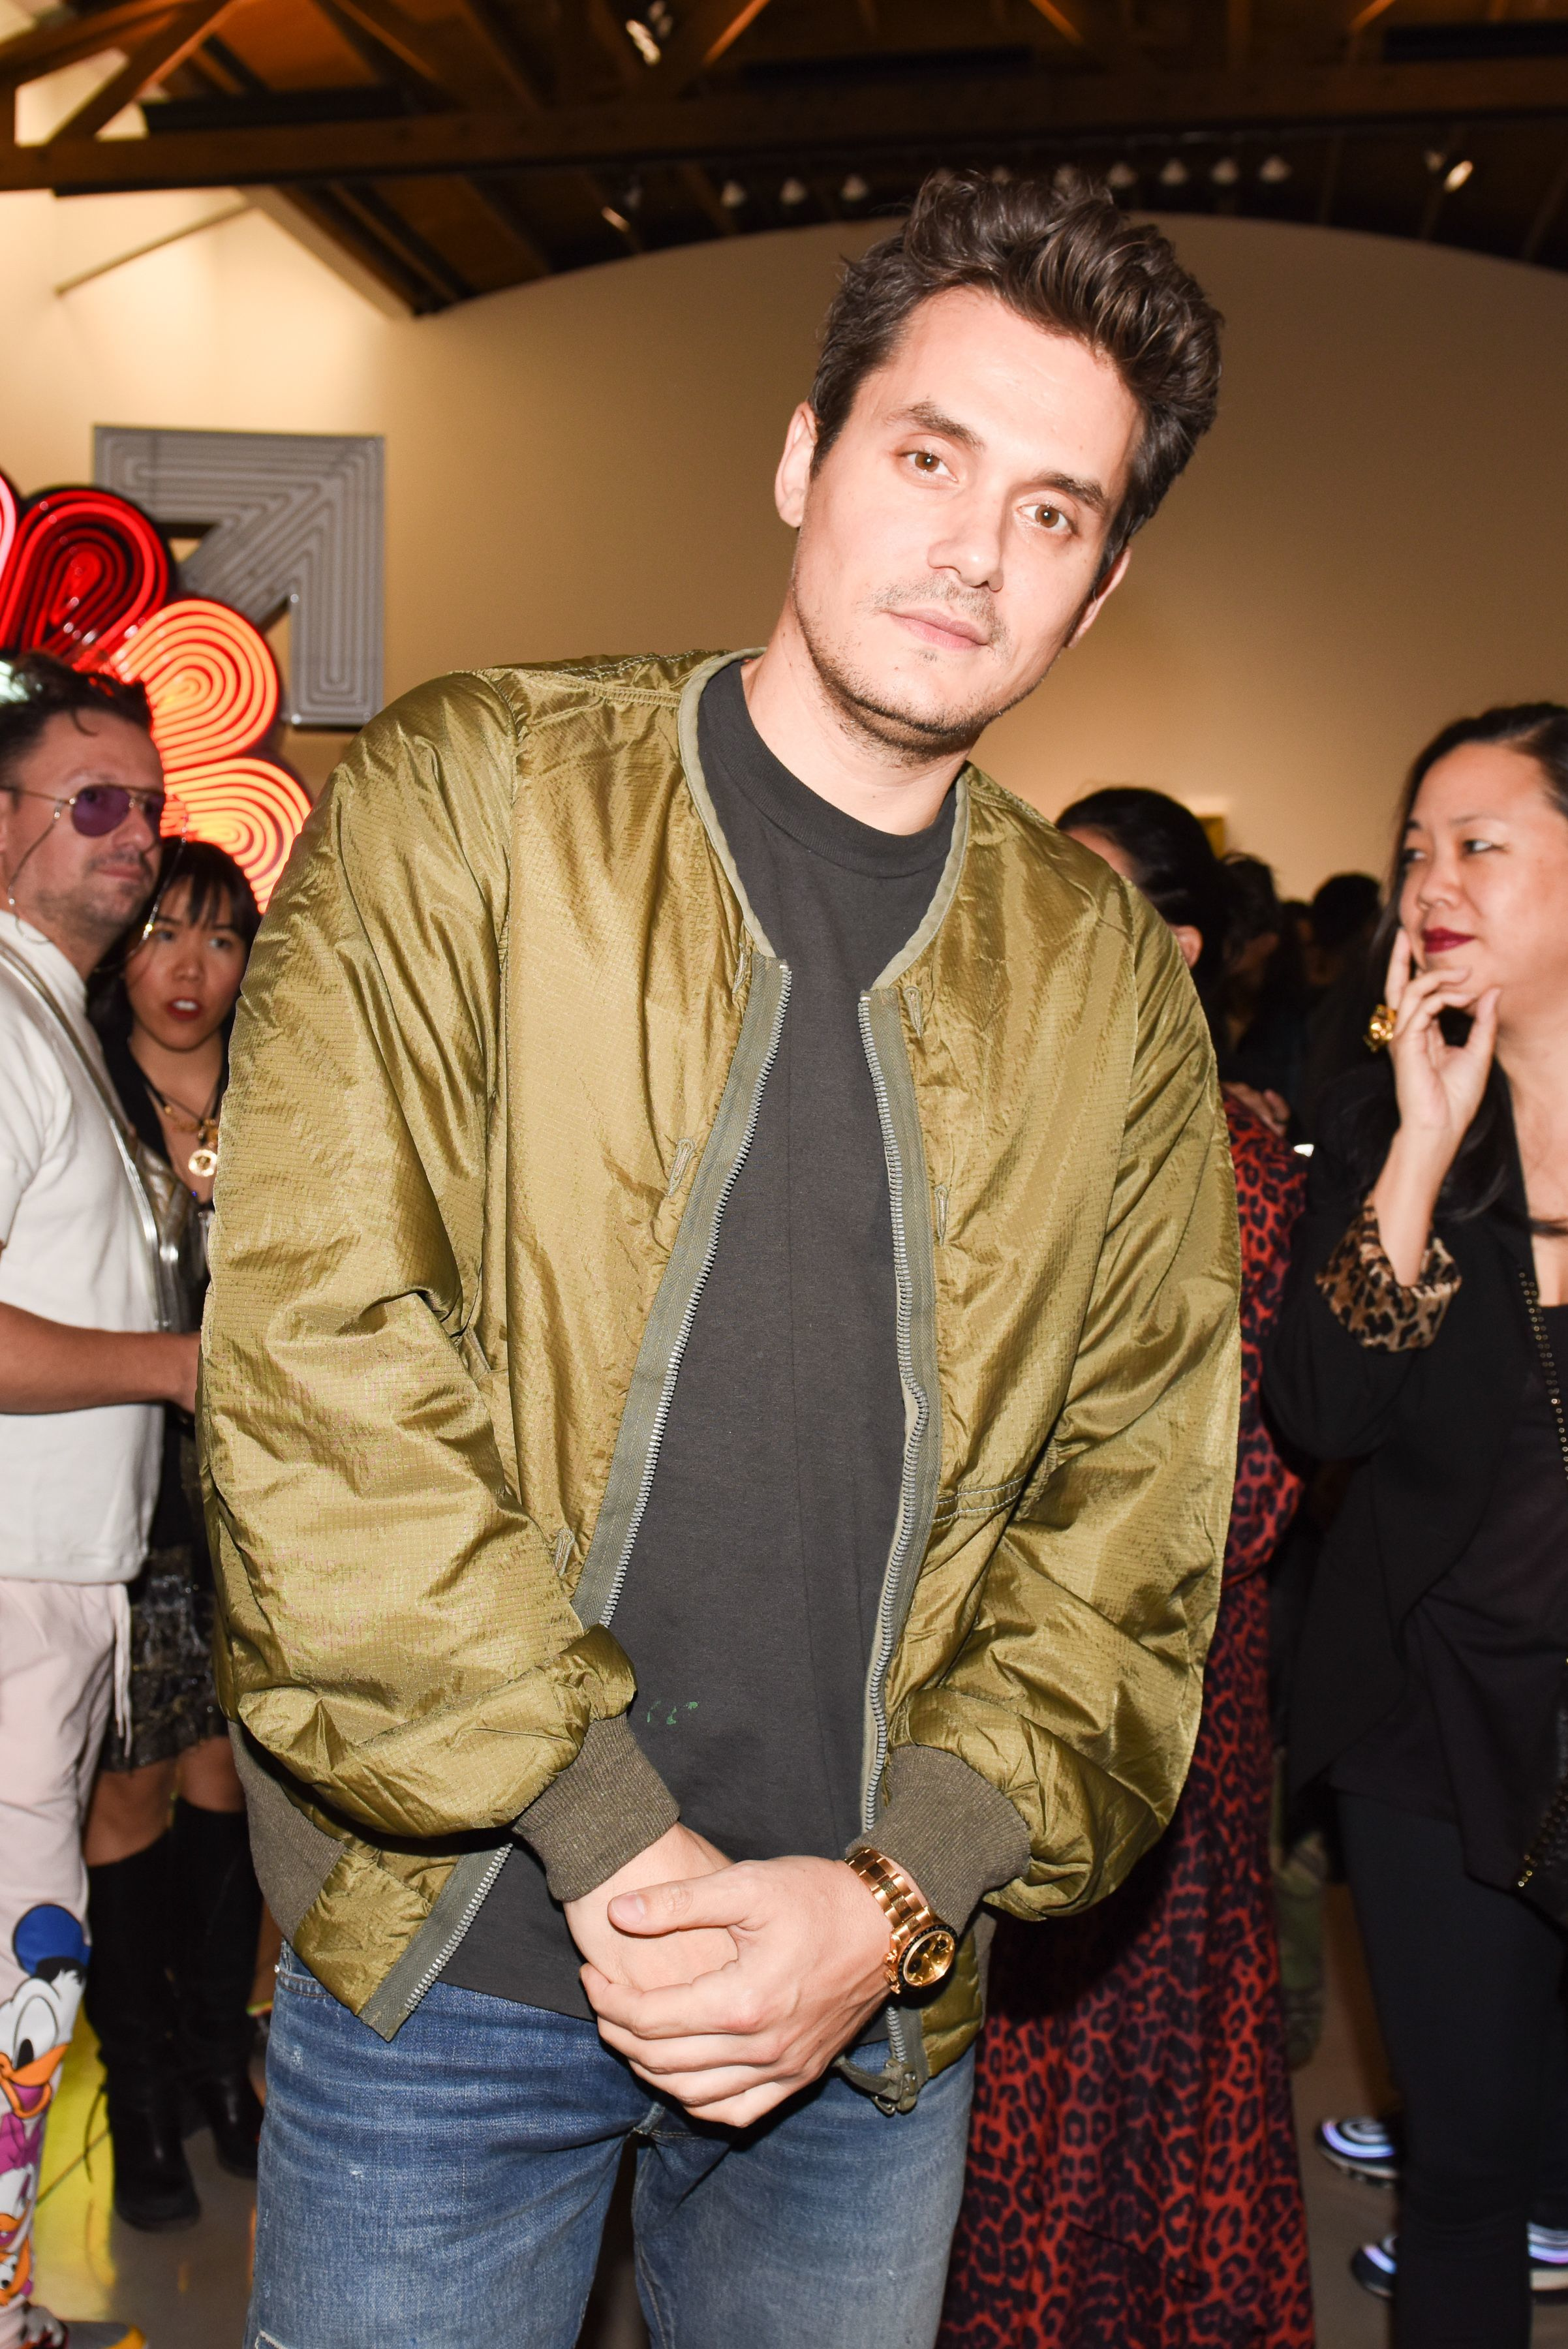 John Mayer attends the Murakami & Abloh America Too at Gagosian Beverly Hills in Los Angeles on Oct. 10, 2018.